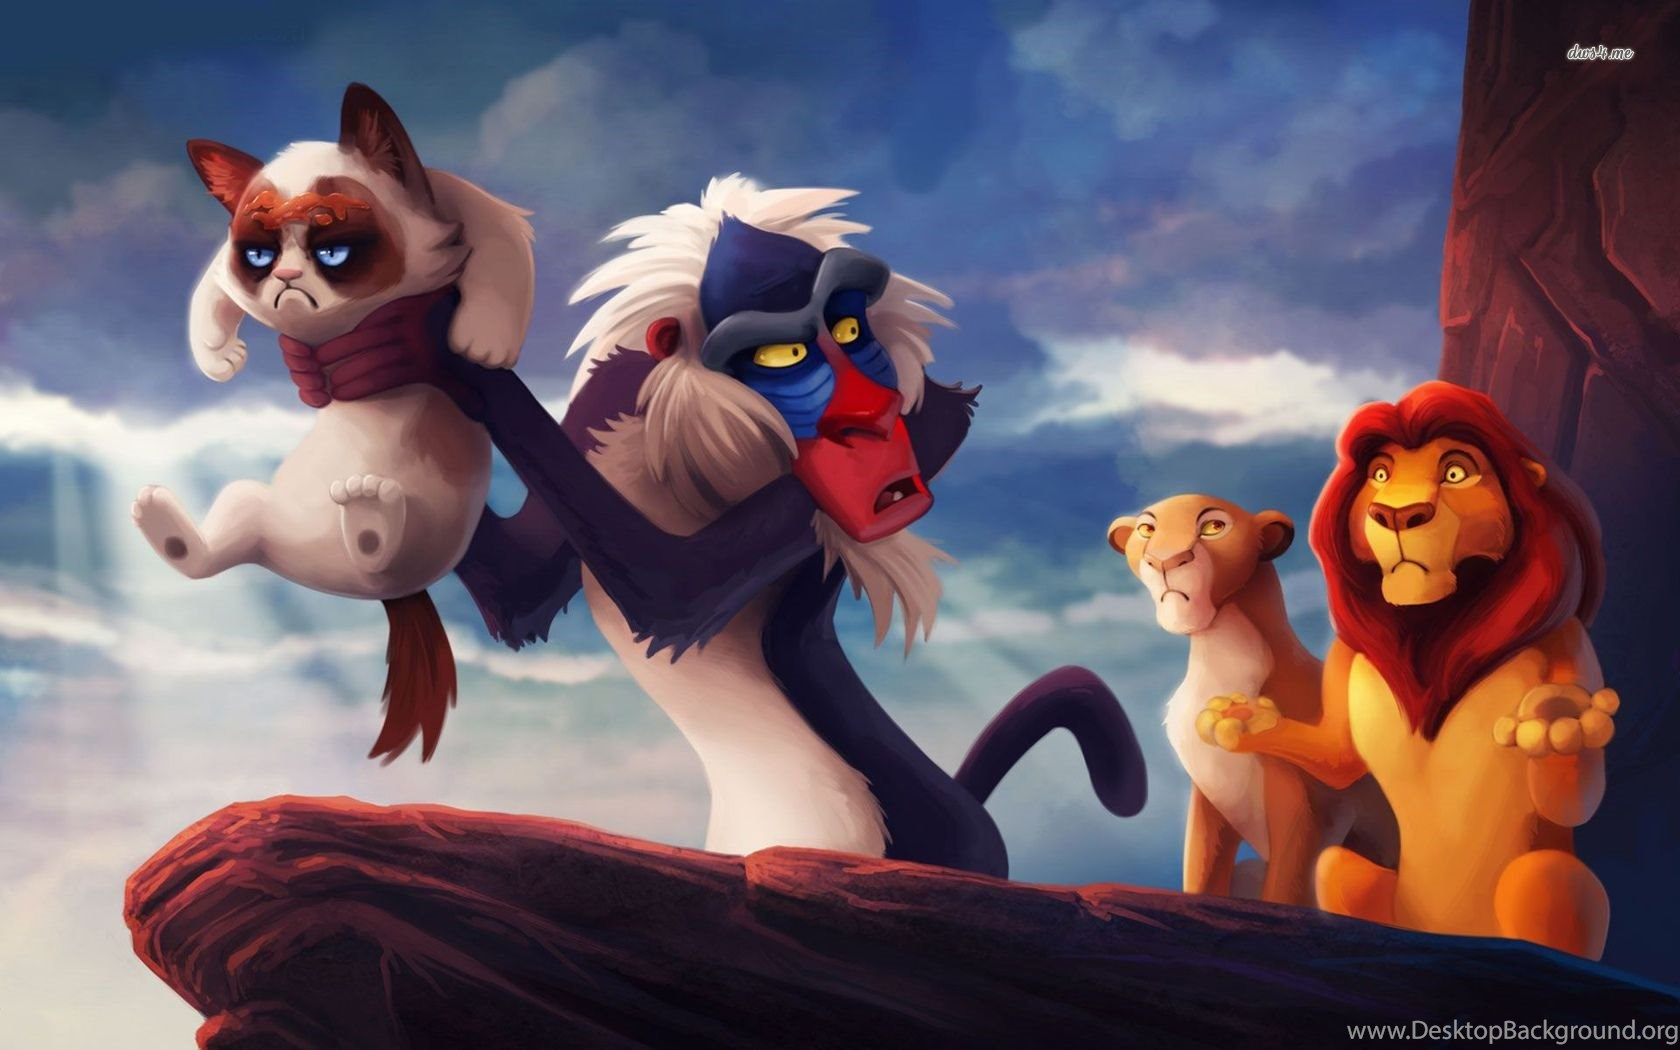 grumpy cat in the lion king wallpapers meme wallpapers desktop